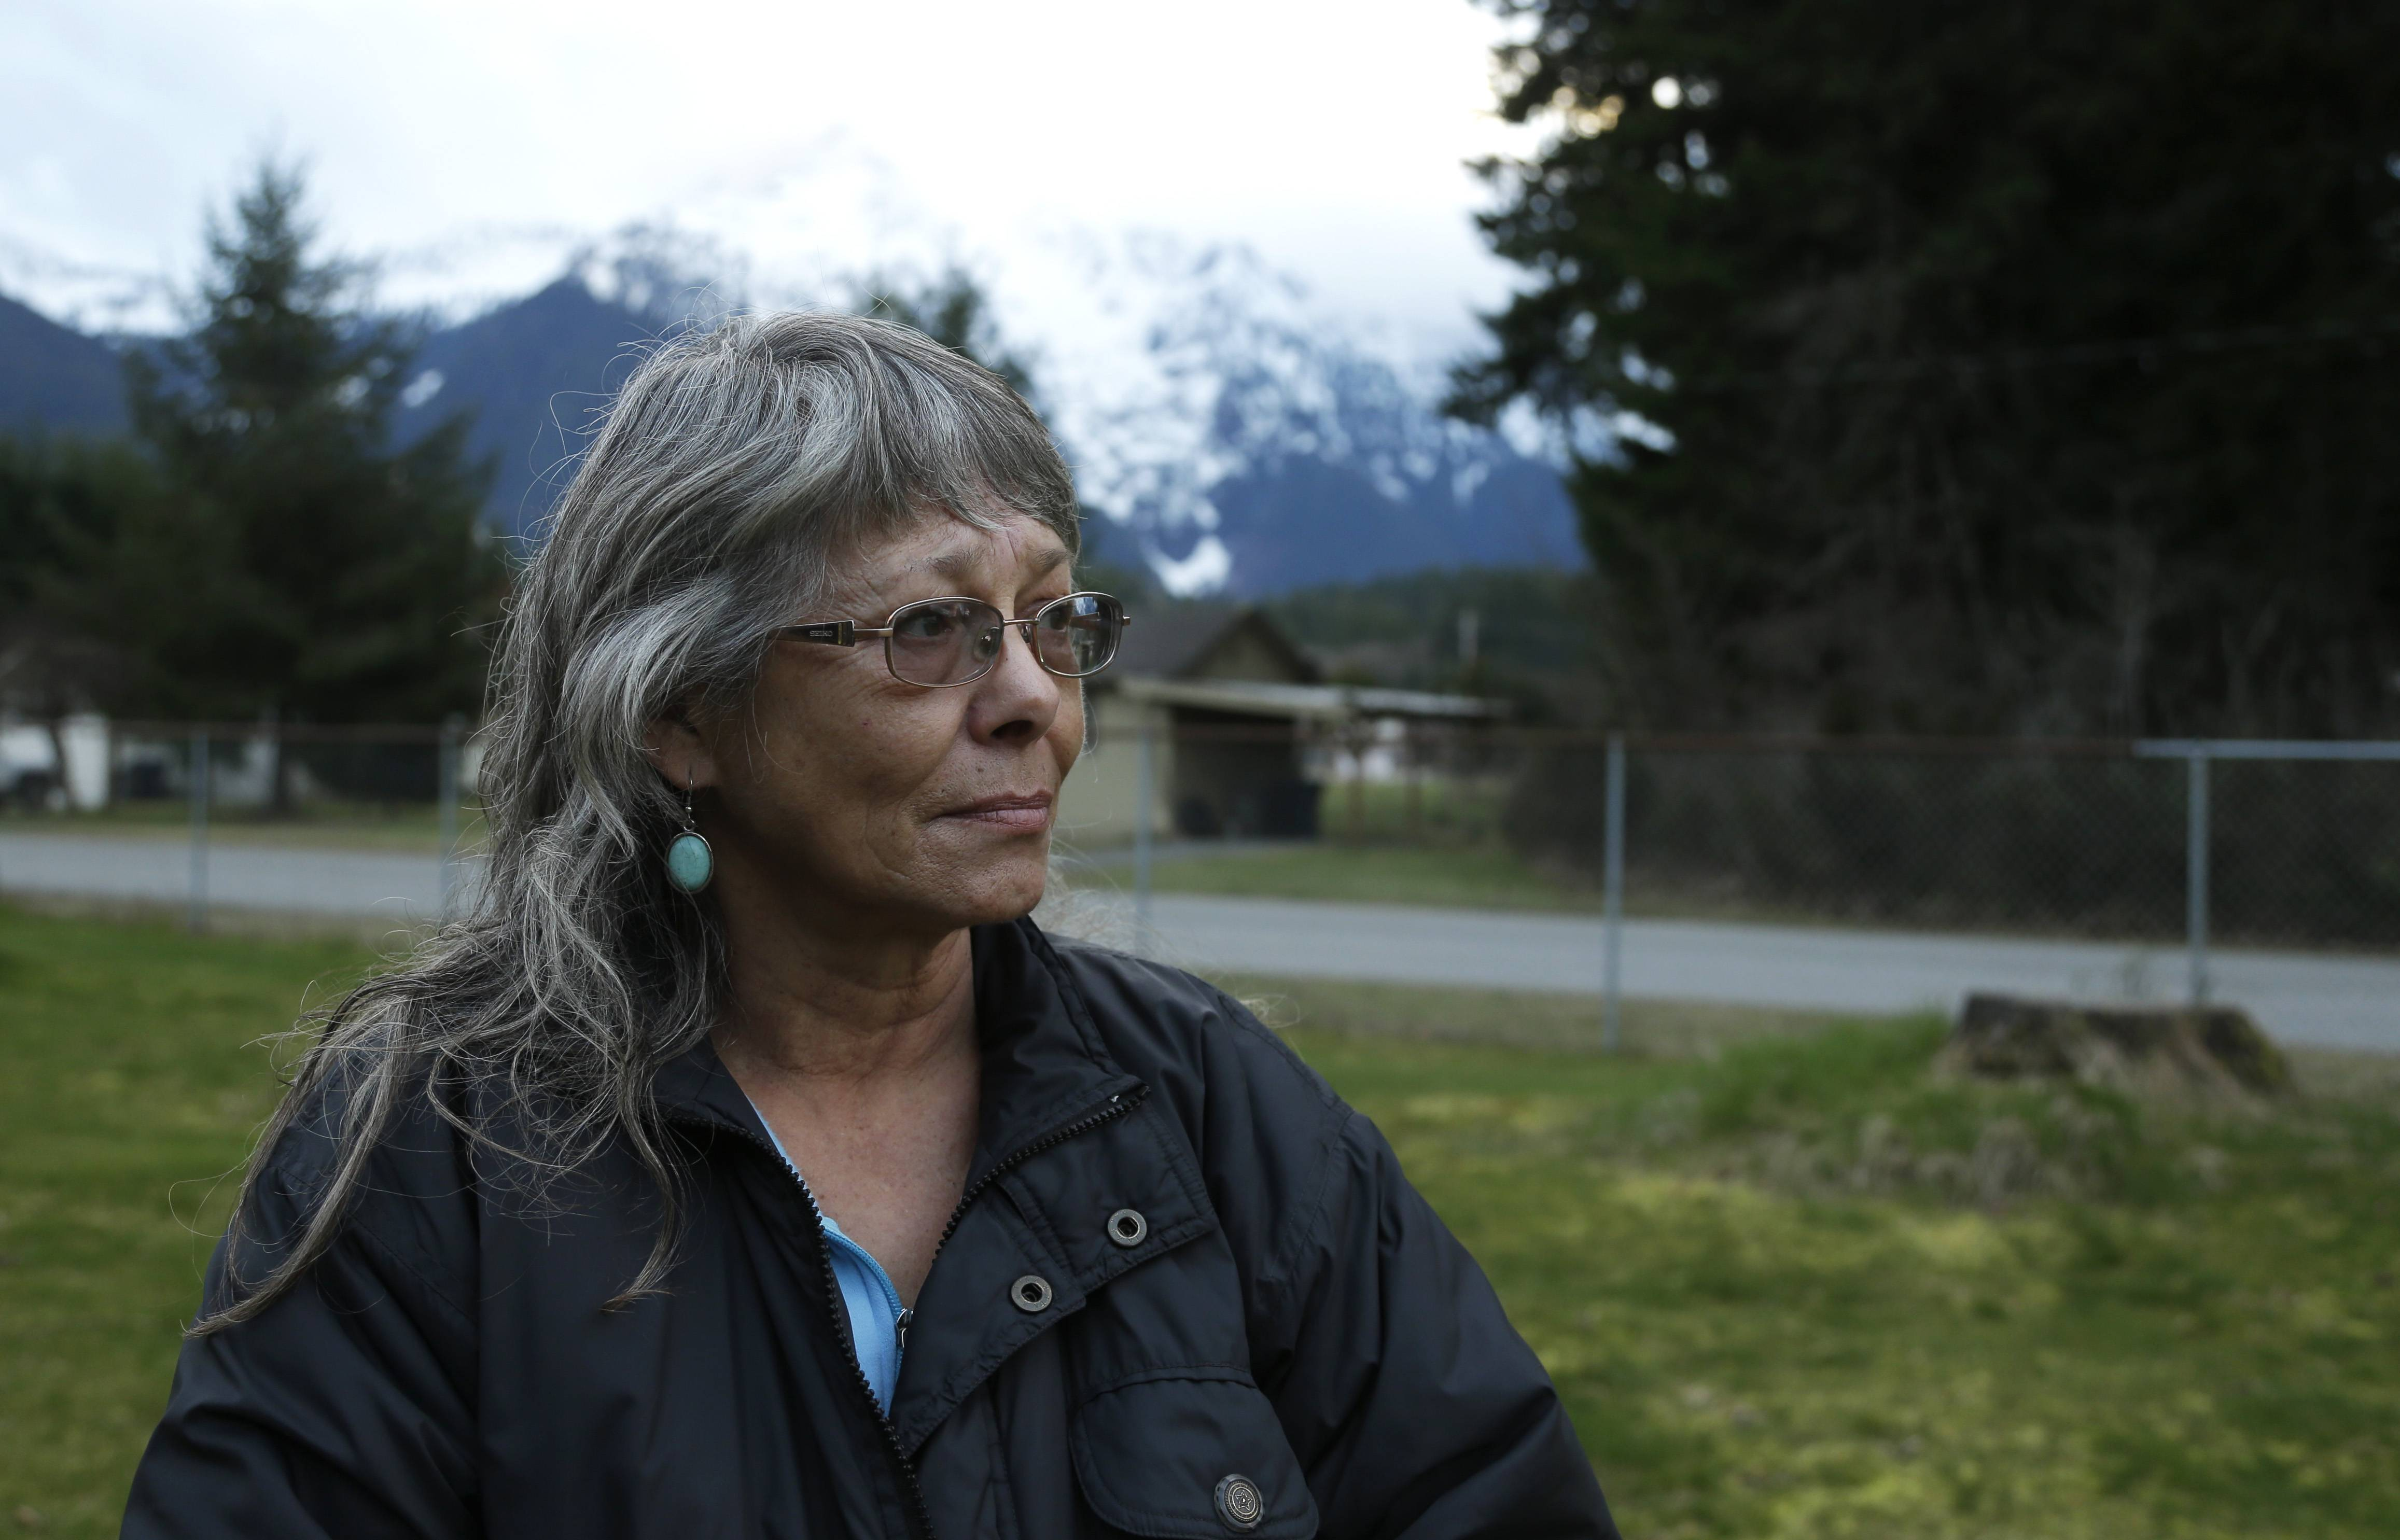 Robin Youngblood survived the massive mudslide that hit the nearby community of Oso, Wash. last Saturday, and was rescued by a helicopter as she floated on a piece of a roof.